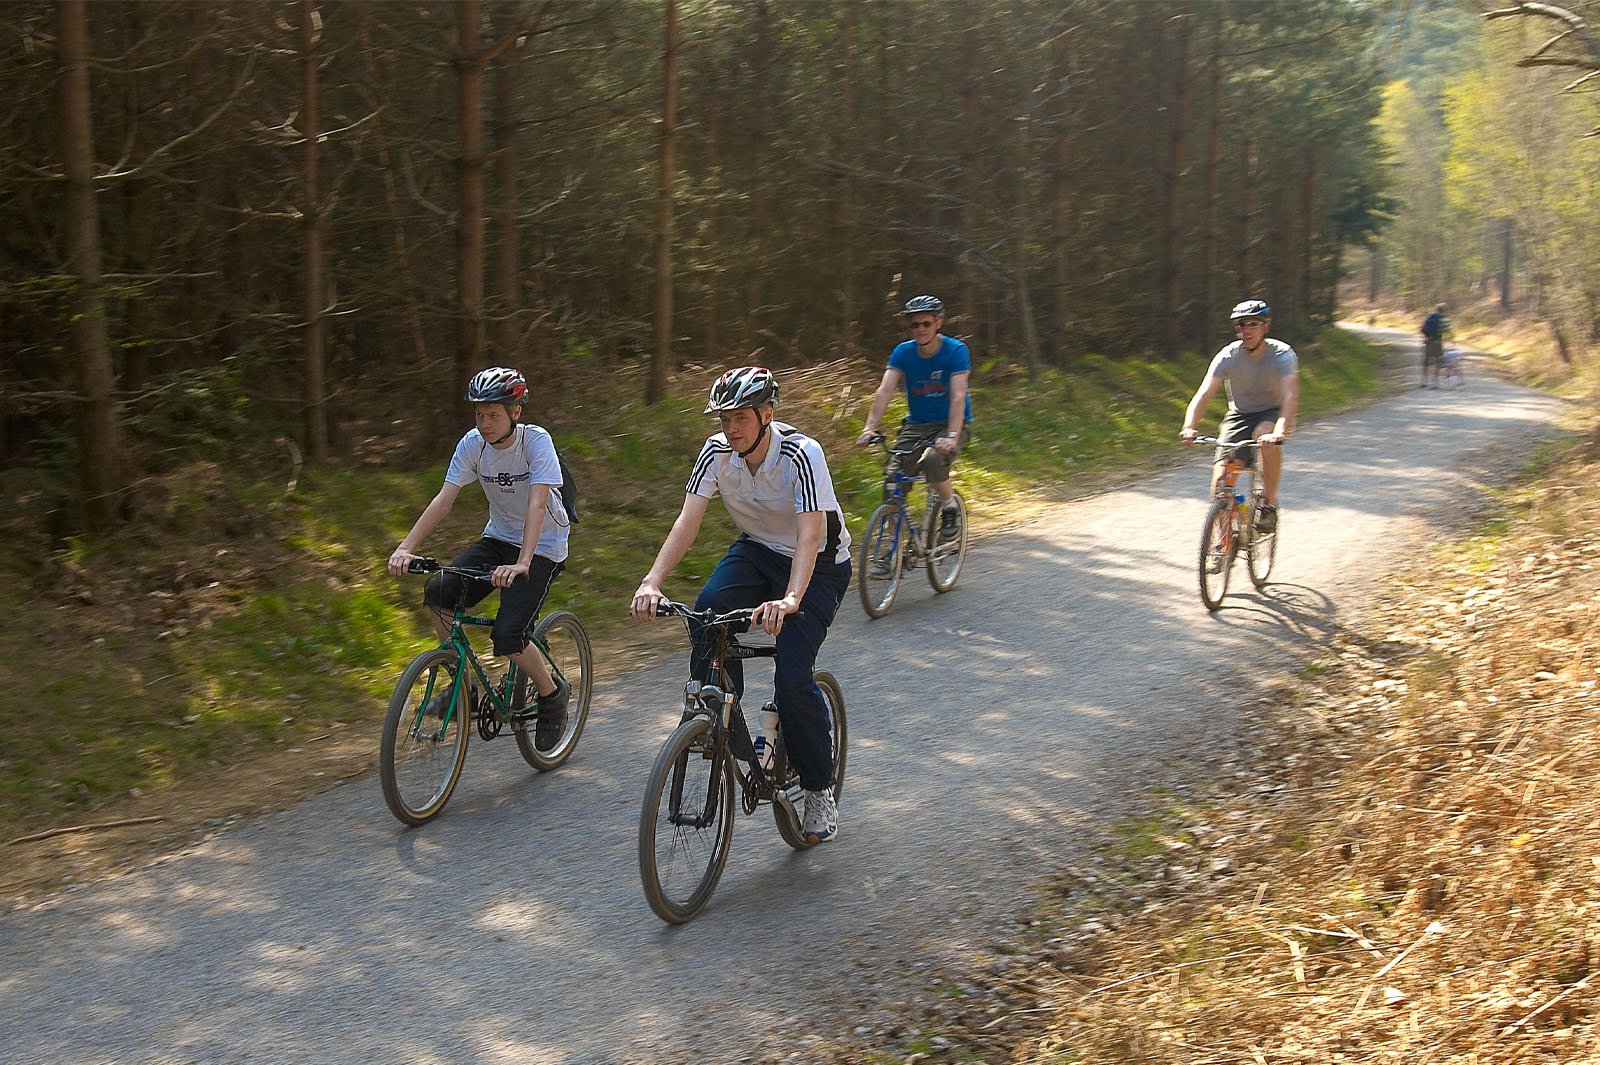 Try the Cycle trails at Bedgebury! - photo by David Hodgkinson